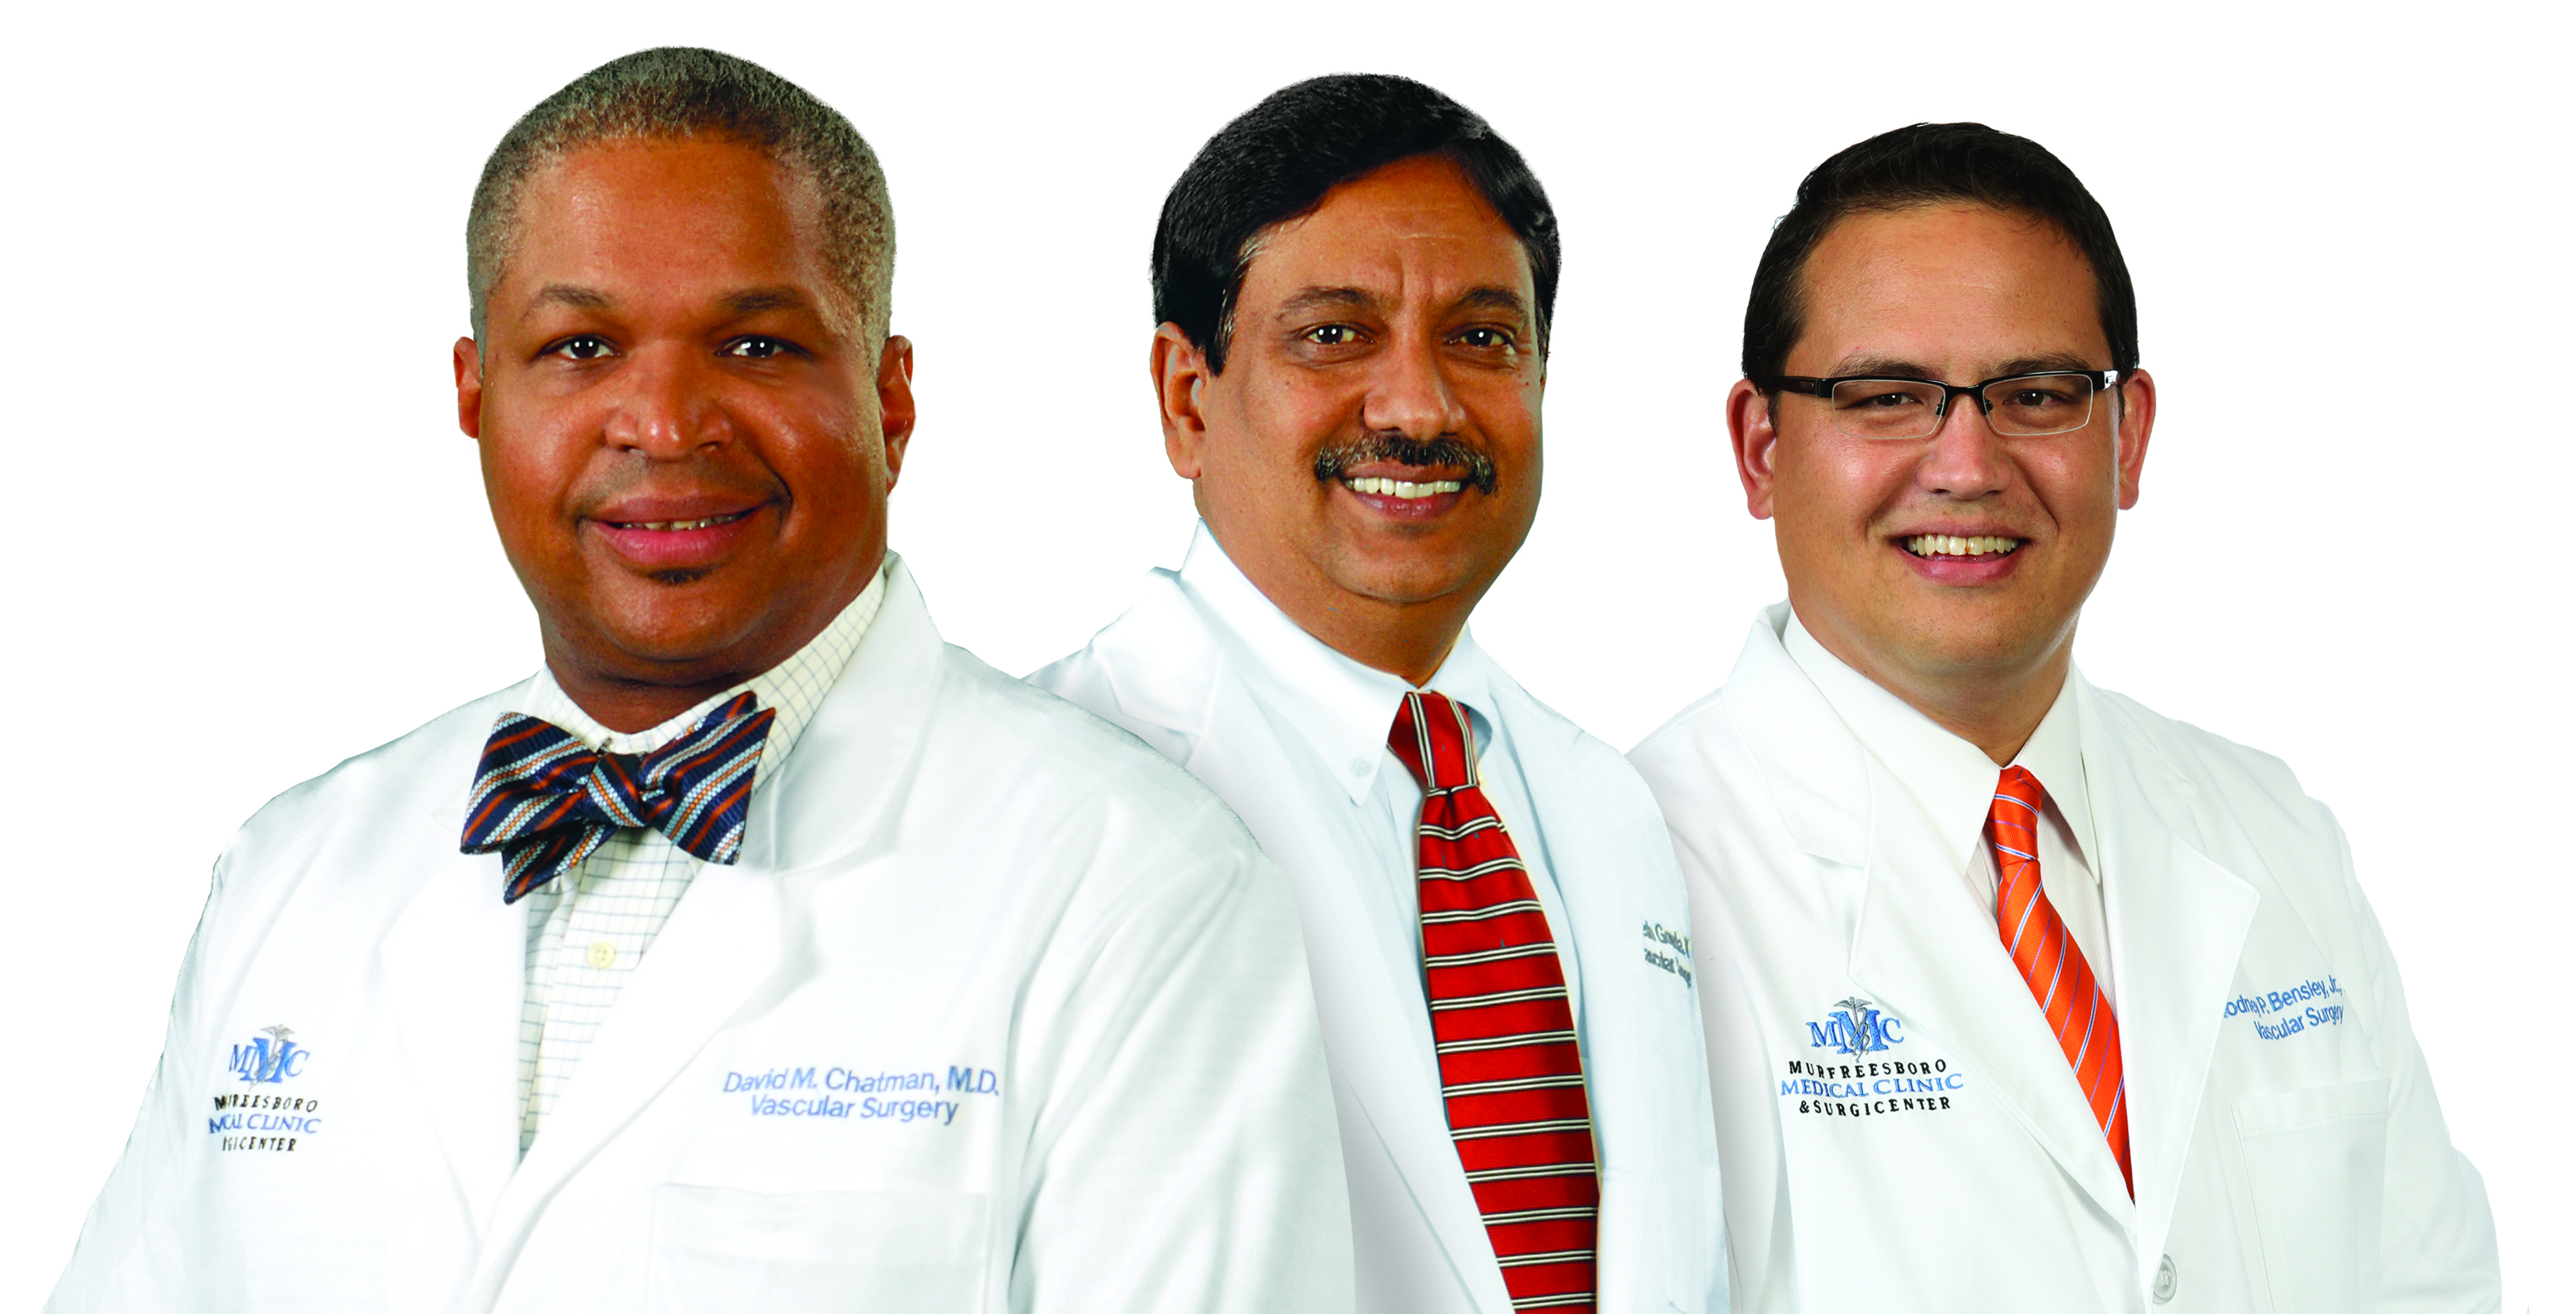 Murfreesboro Medical Clinic to Offer VenaSeal Procedure for Varicose Veins, Swollen and Painful Legs